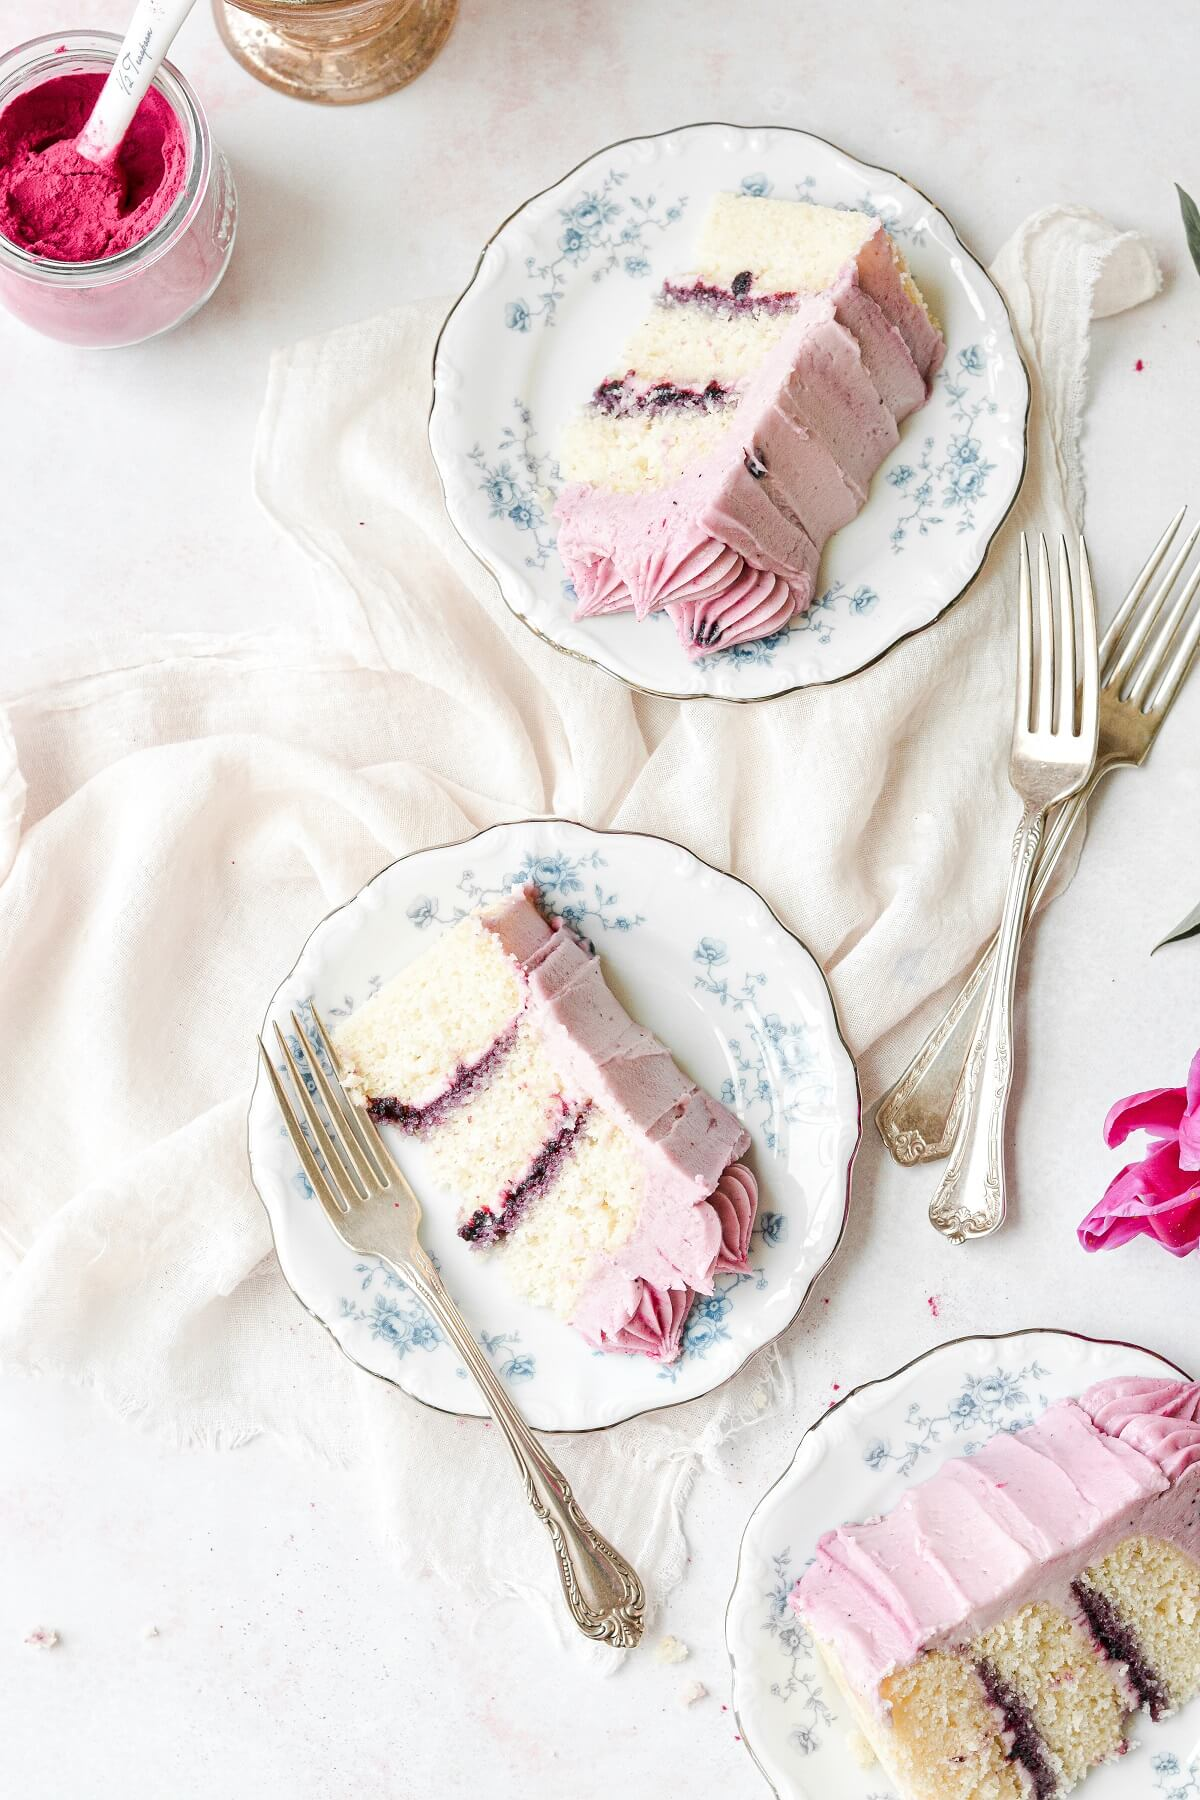 Slices of vanilla cake with blueberry jam filling and blueberry buttercream.